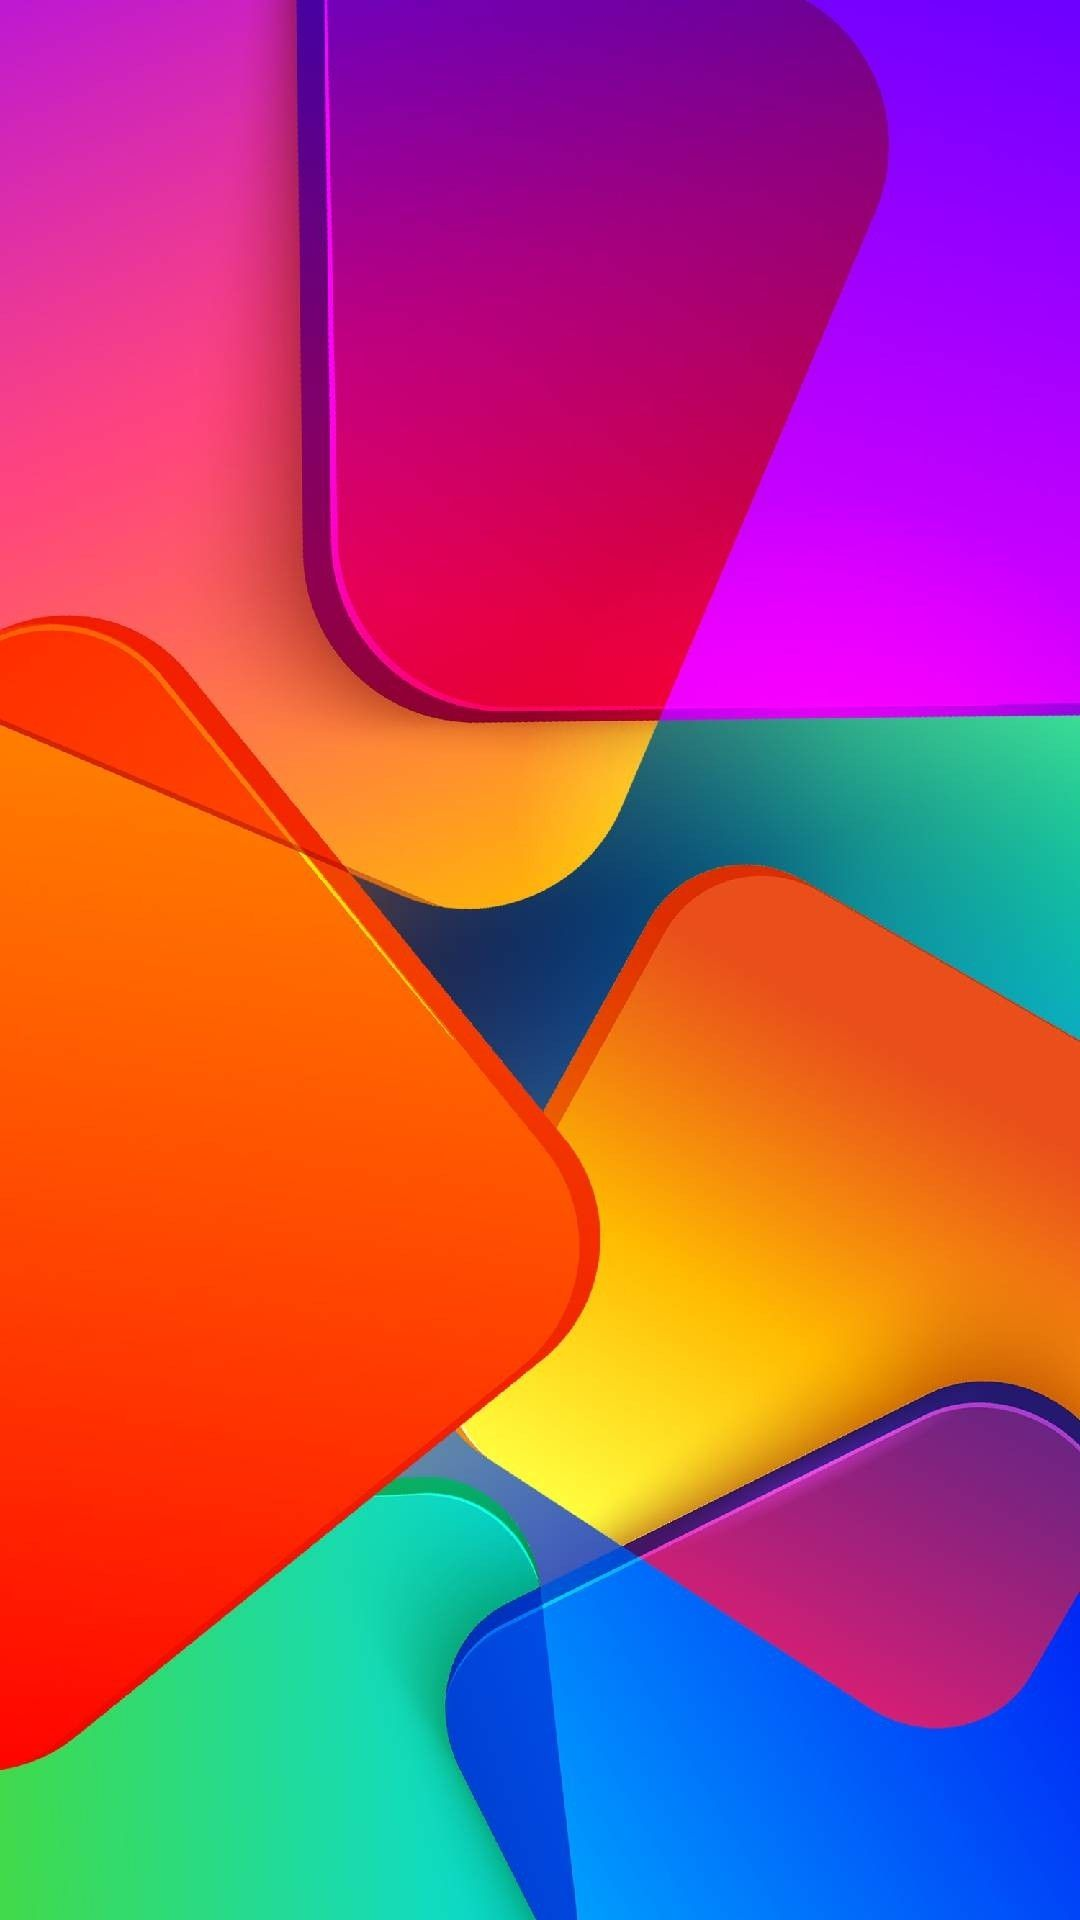 Pin by Kathy Mortensen on Bright Color Abstract